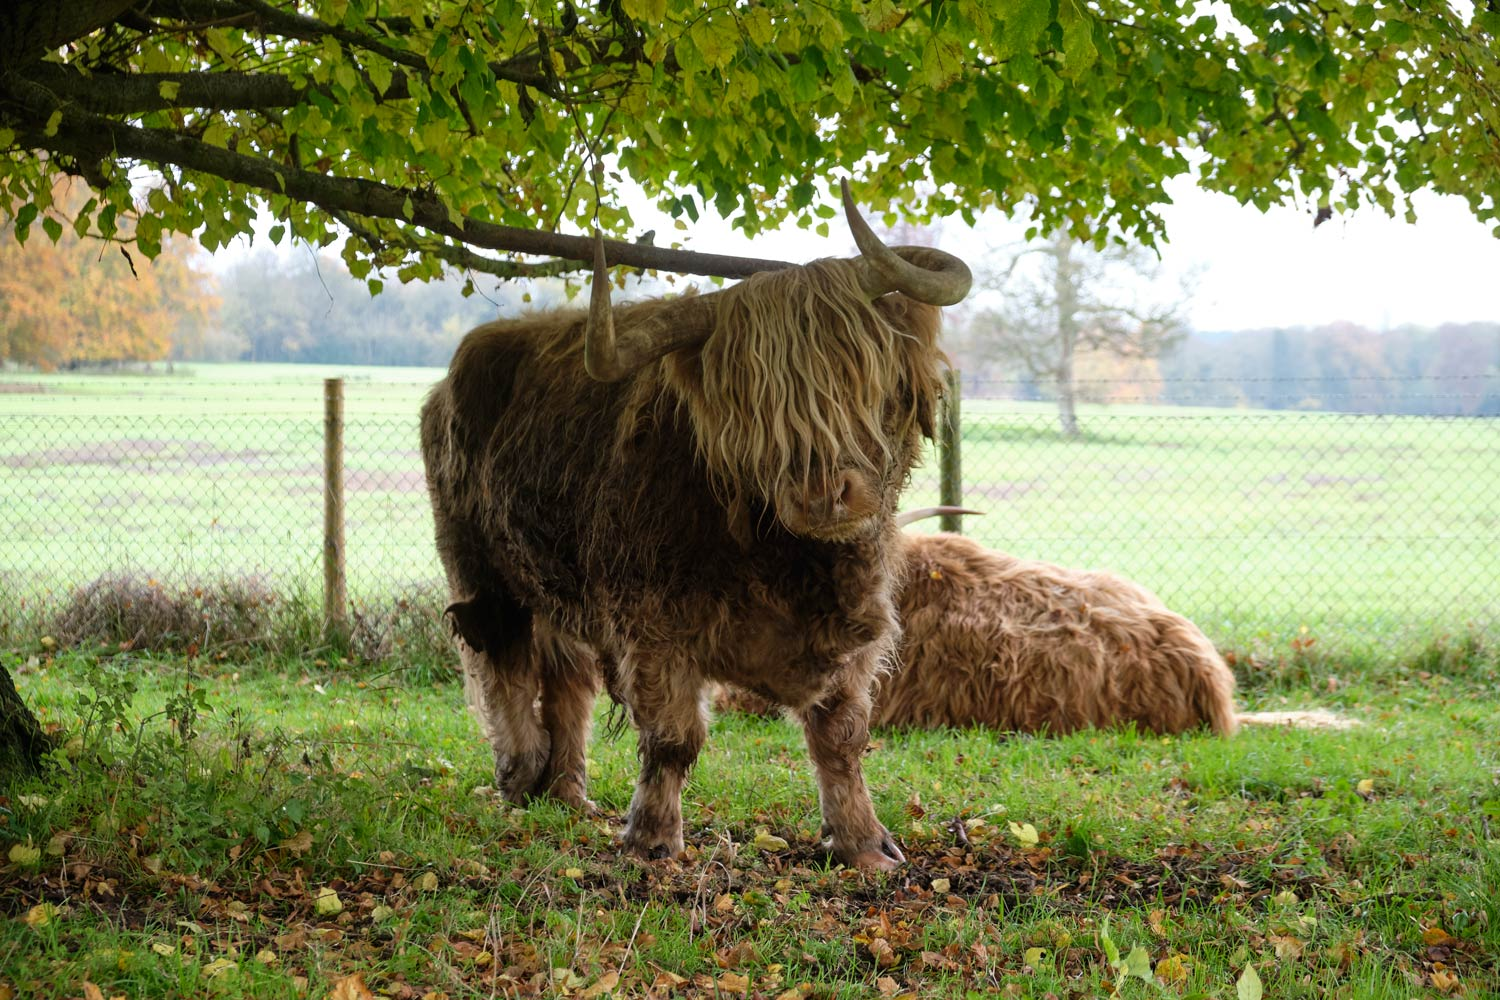 Highland cow in Hampshire scratching its back against the low-lying branch of the tree.